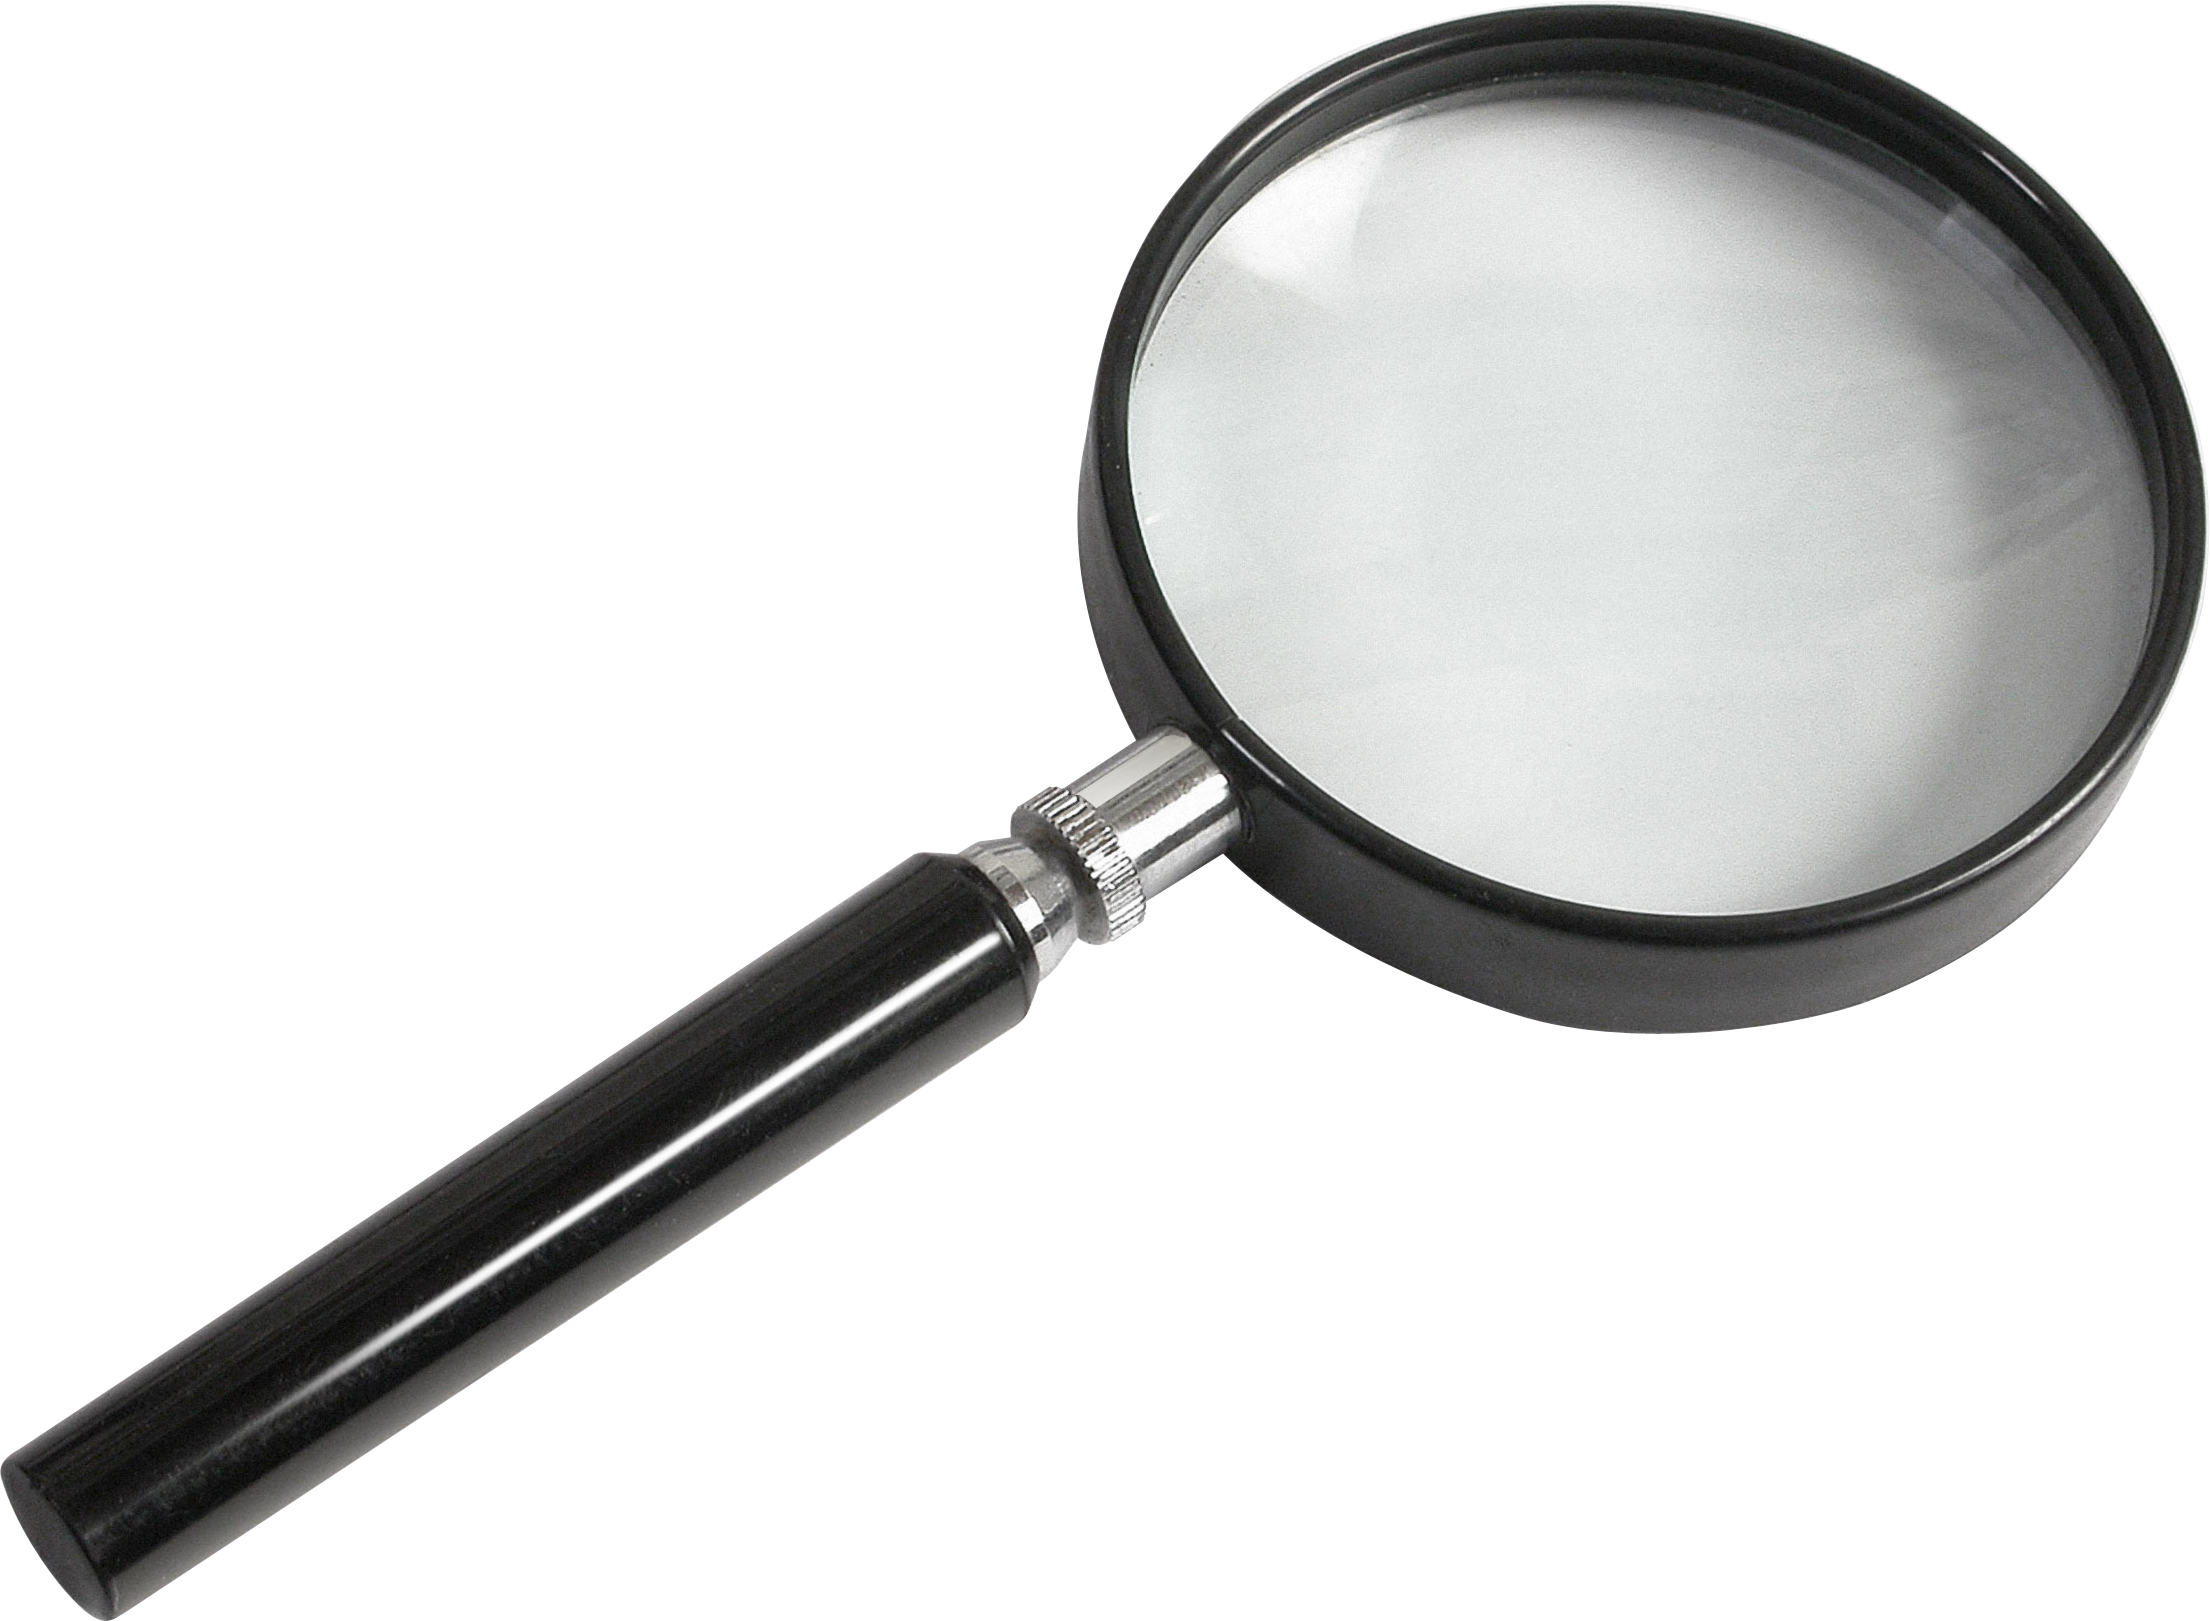 Loupe Png Image Image Png Images Png